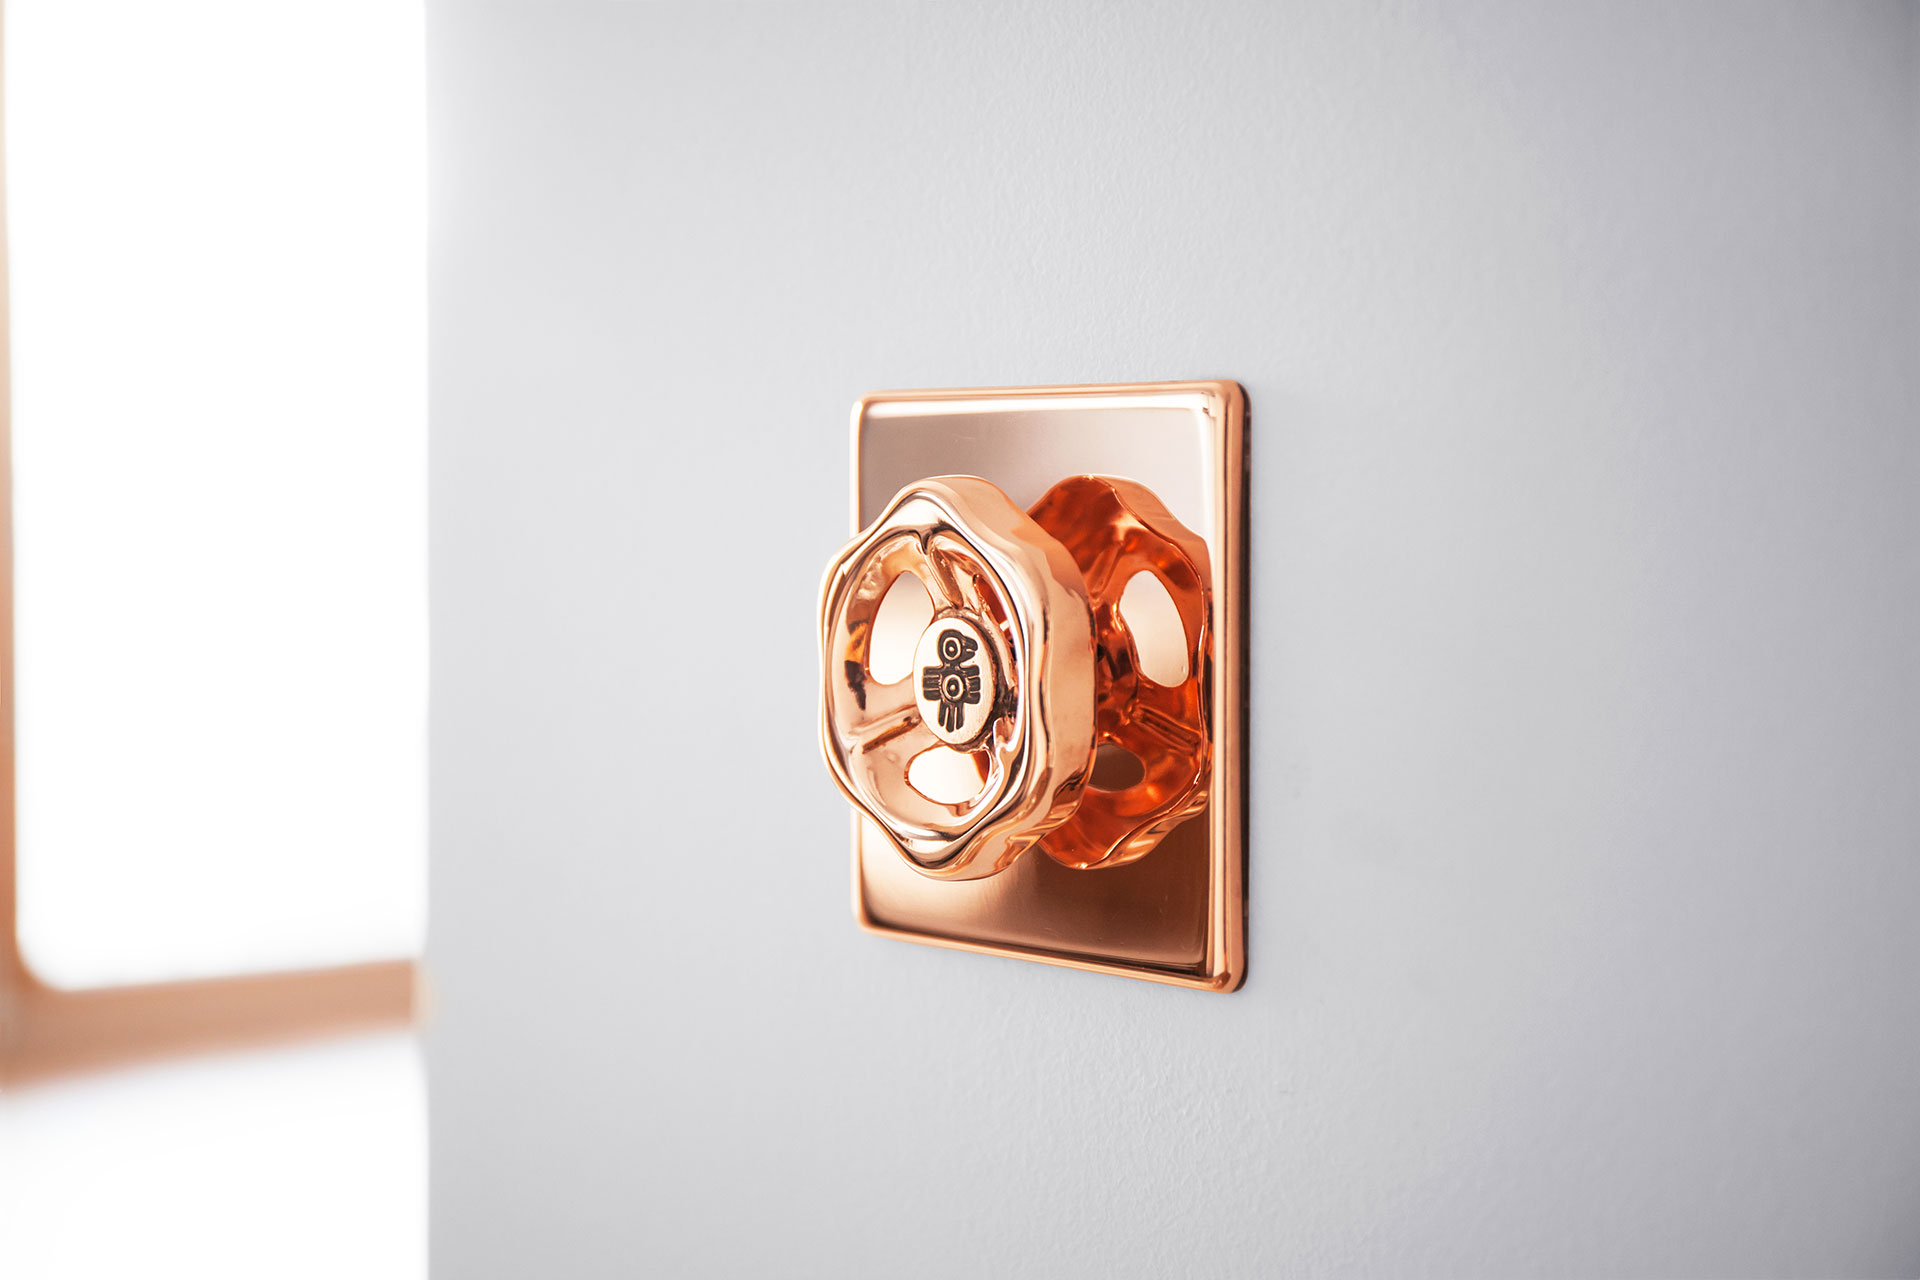 Wall dimmer light switch in fashionable copper metal finish for loft style interiors